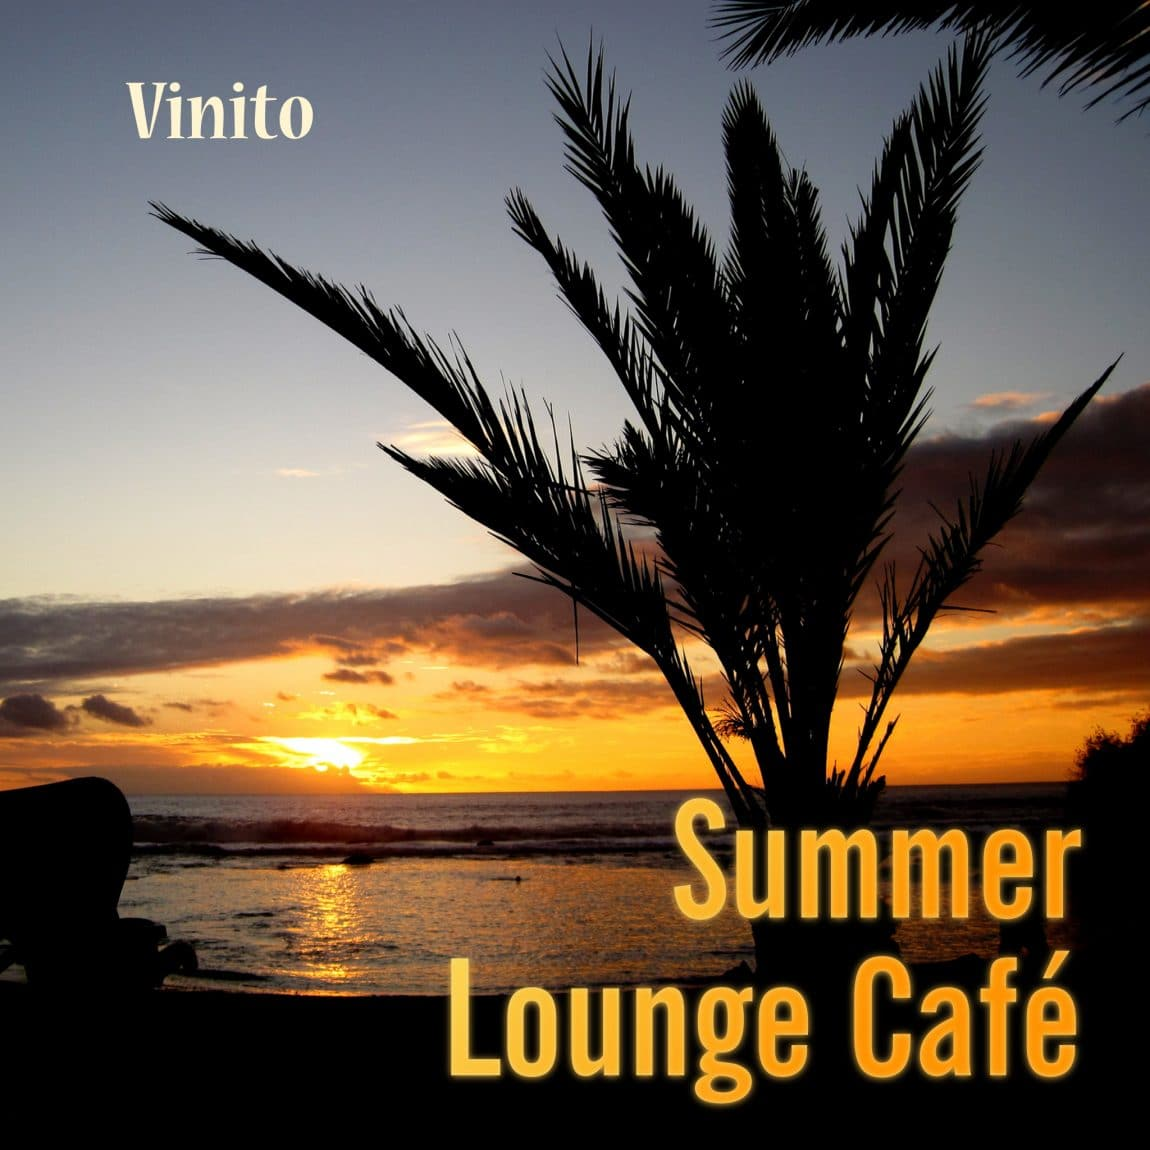 Album: Summer Lounge Café